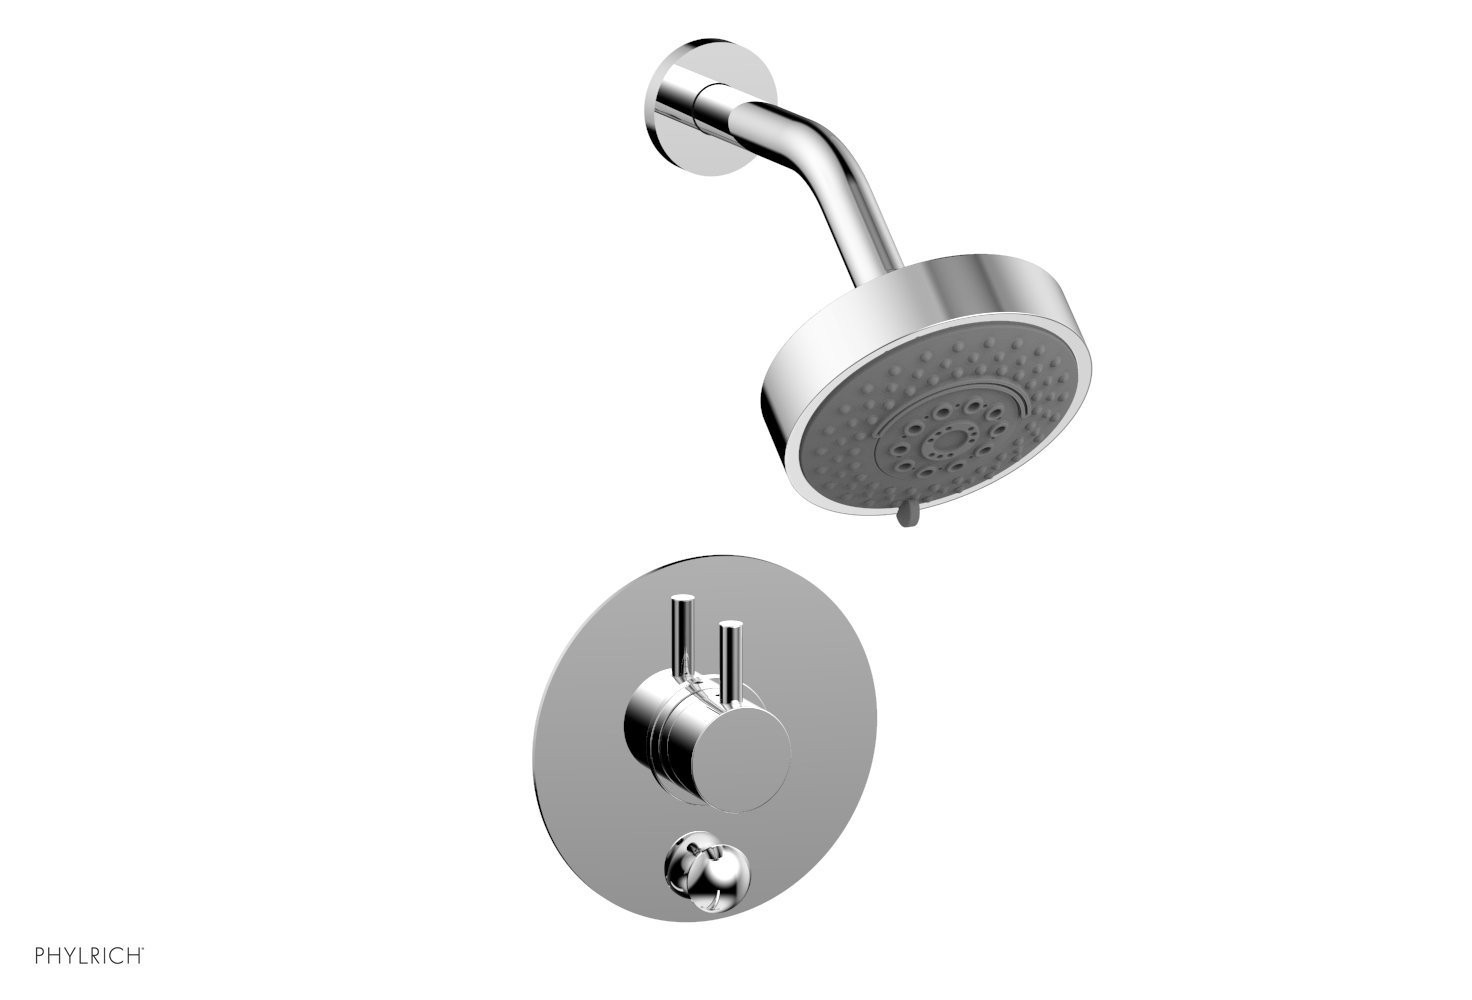 PHYLRICH 4-191 BASIC II WALL MOUNT PRESSURE BALANCE SHOWER AND DIVERTER SET WITH LEVER HANDLE